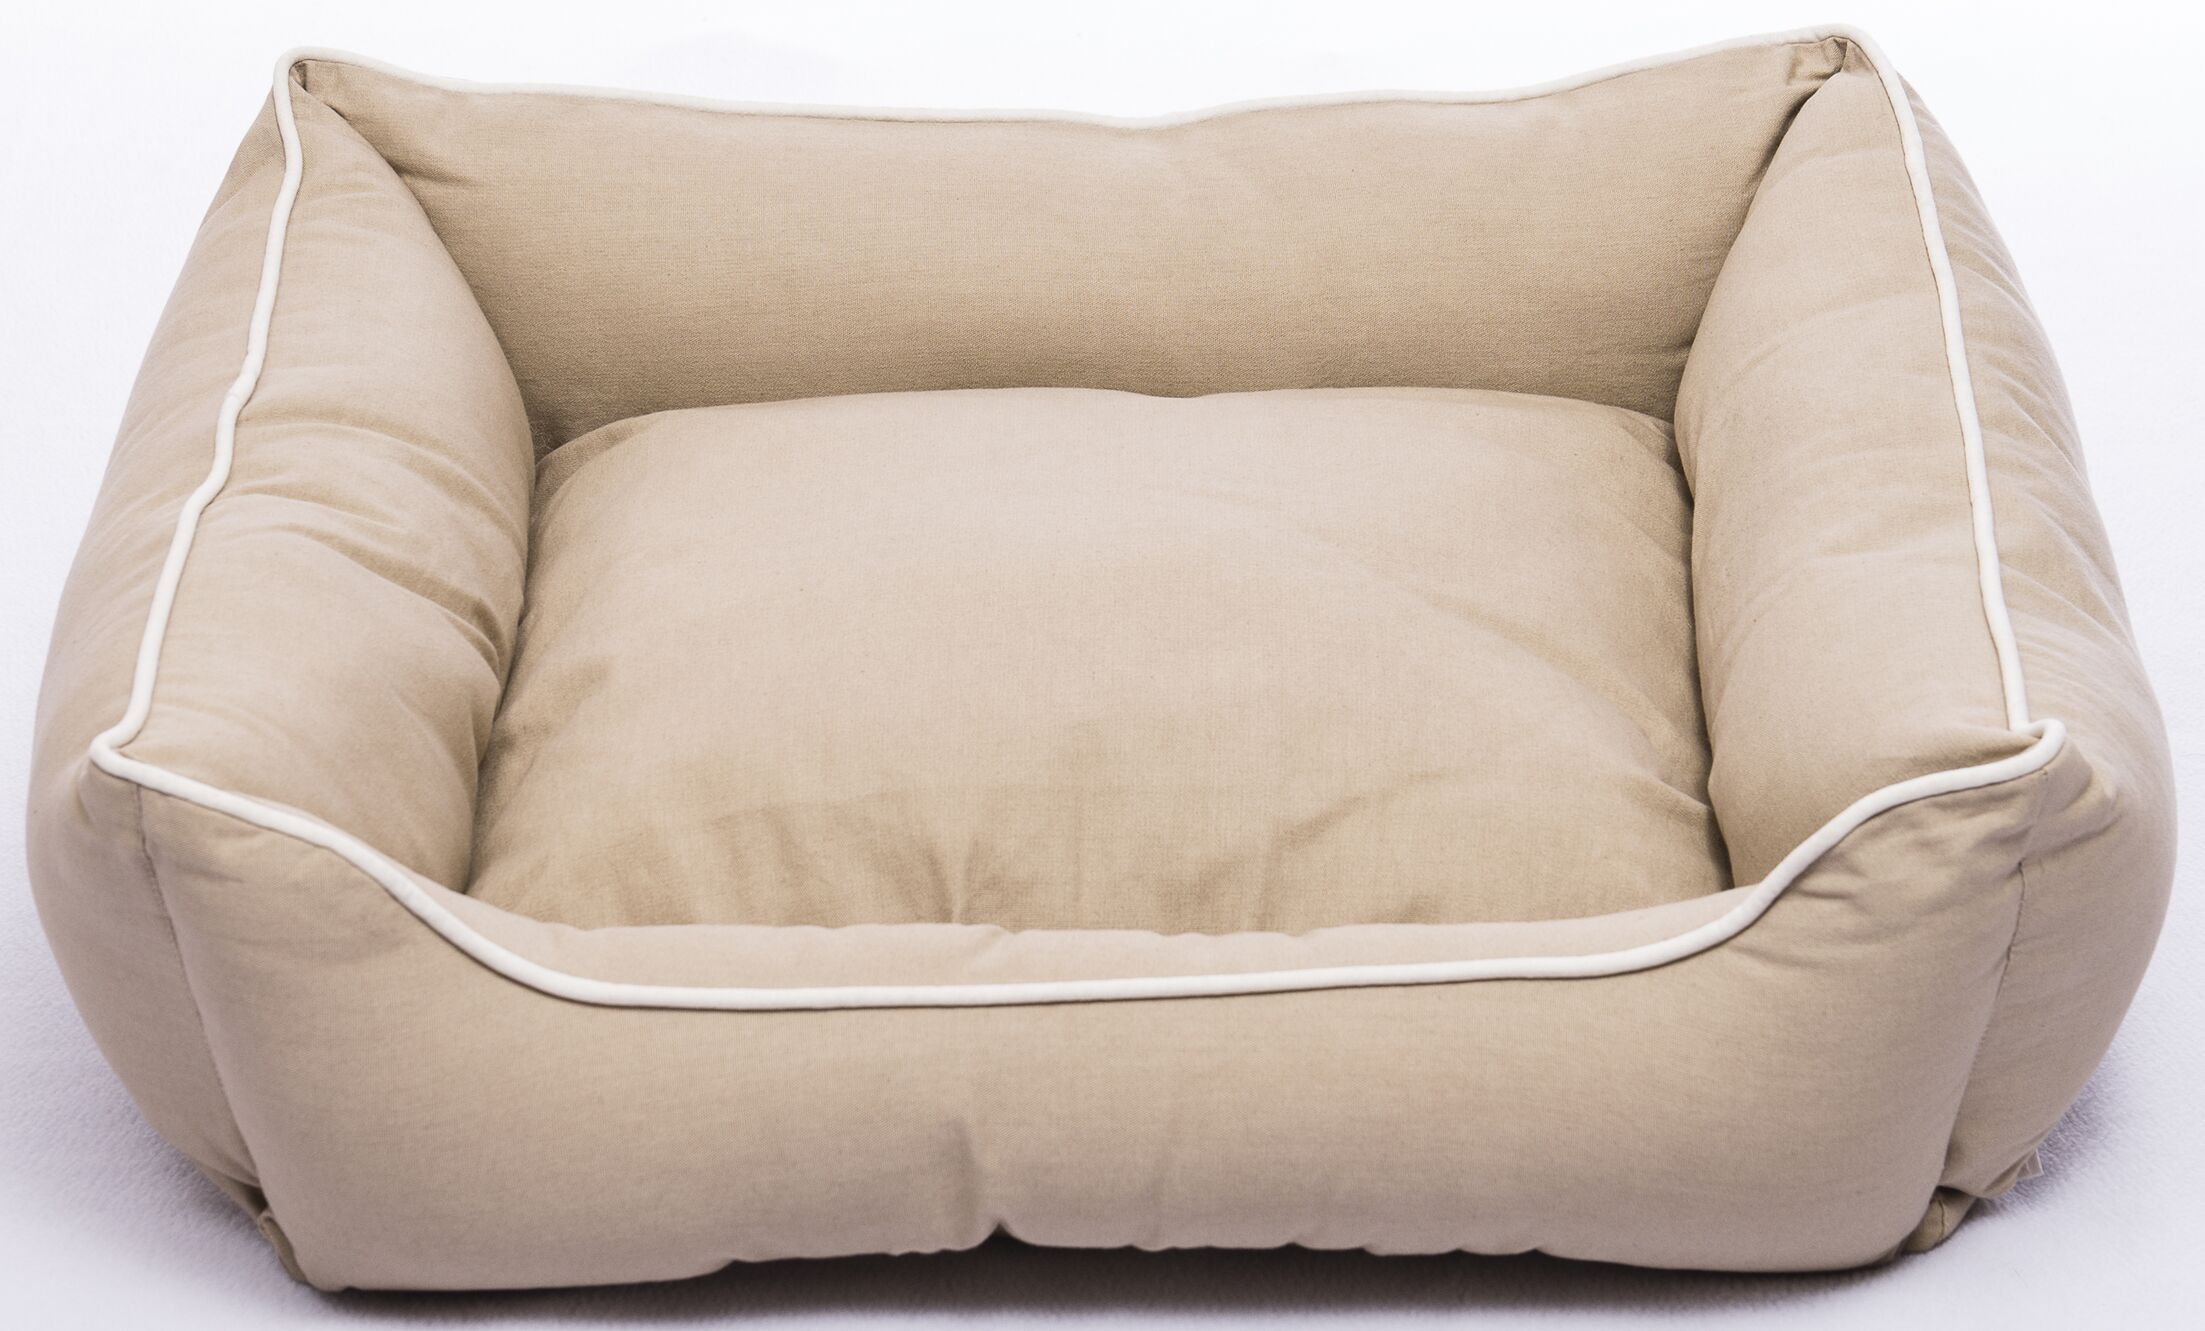 Repelz-It� Bolster Color: Sand, Size: Small (22